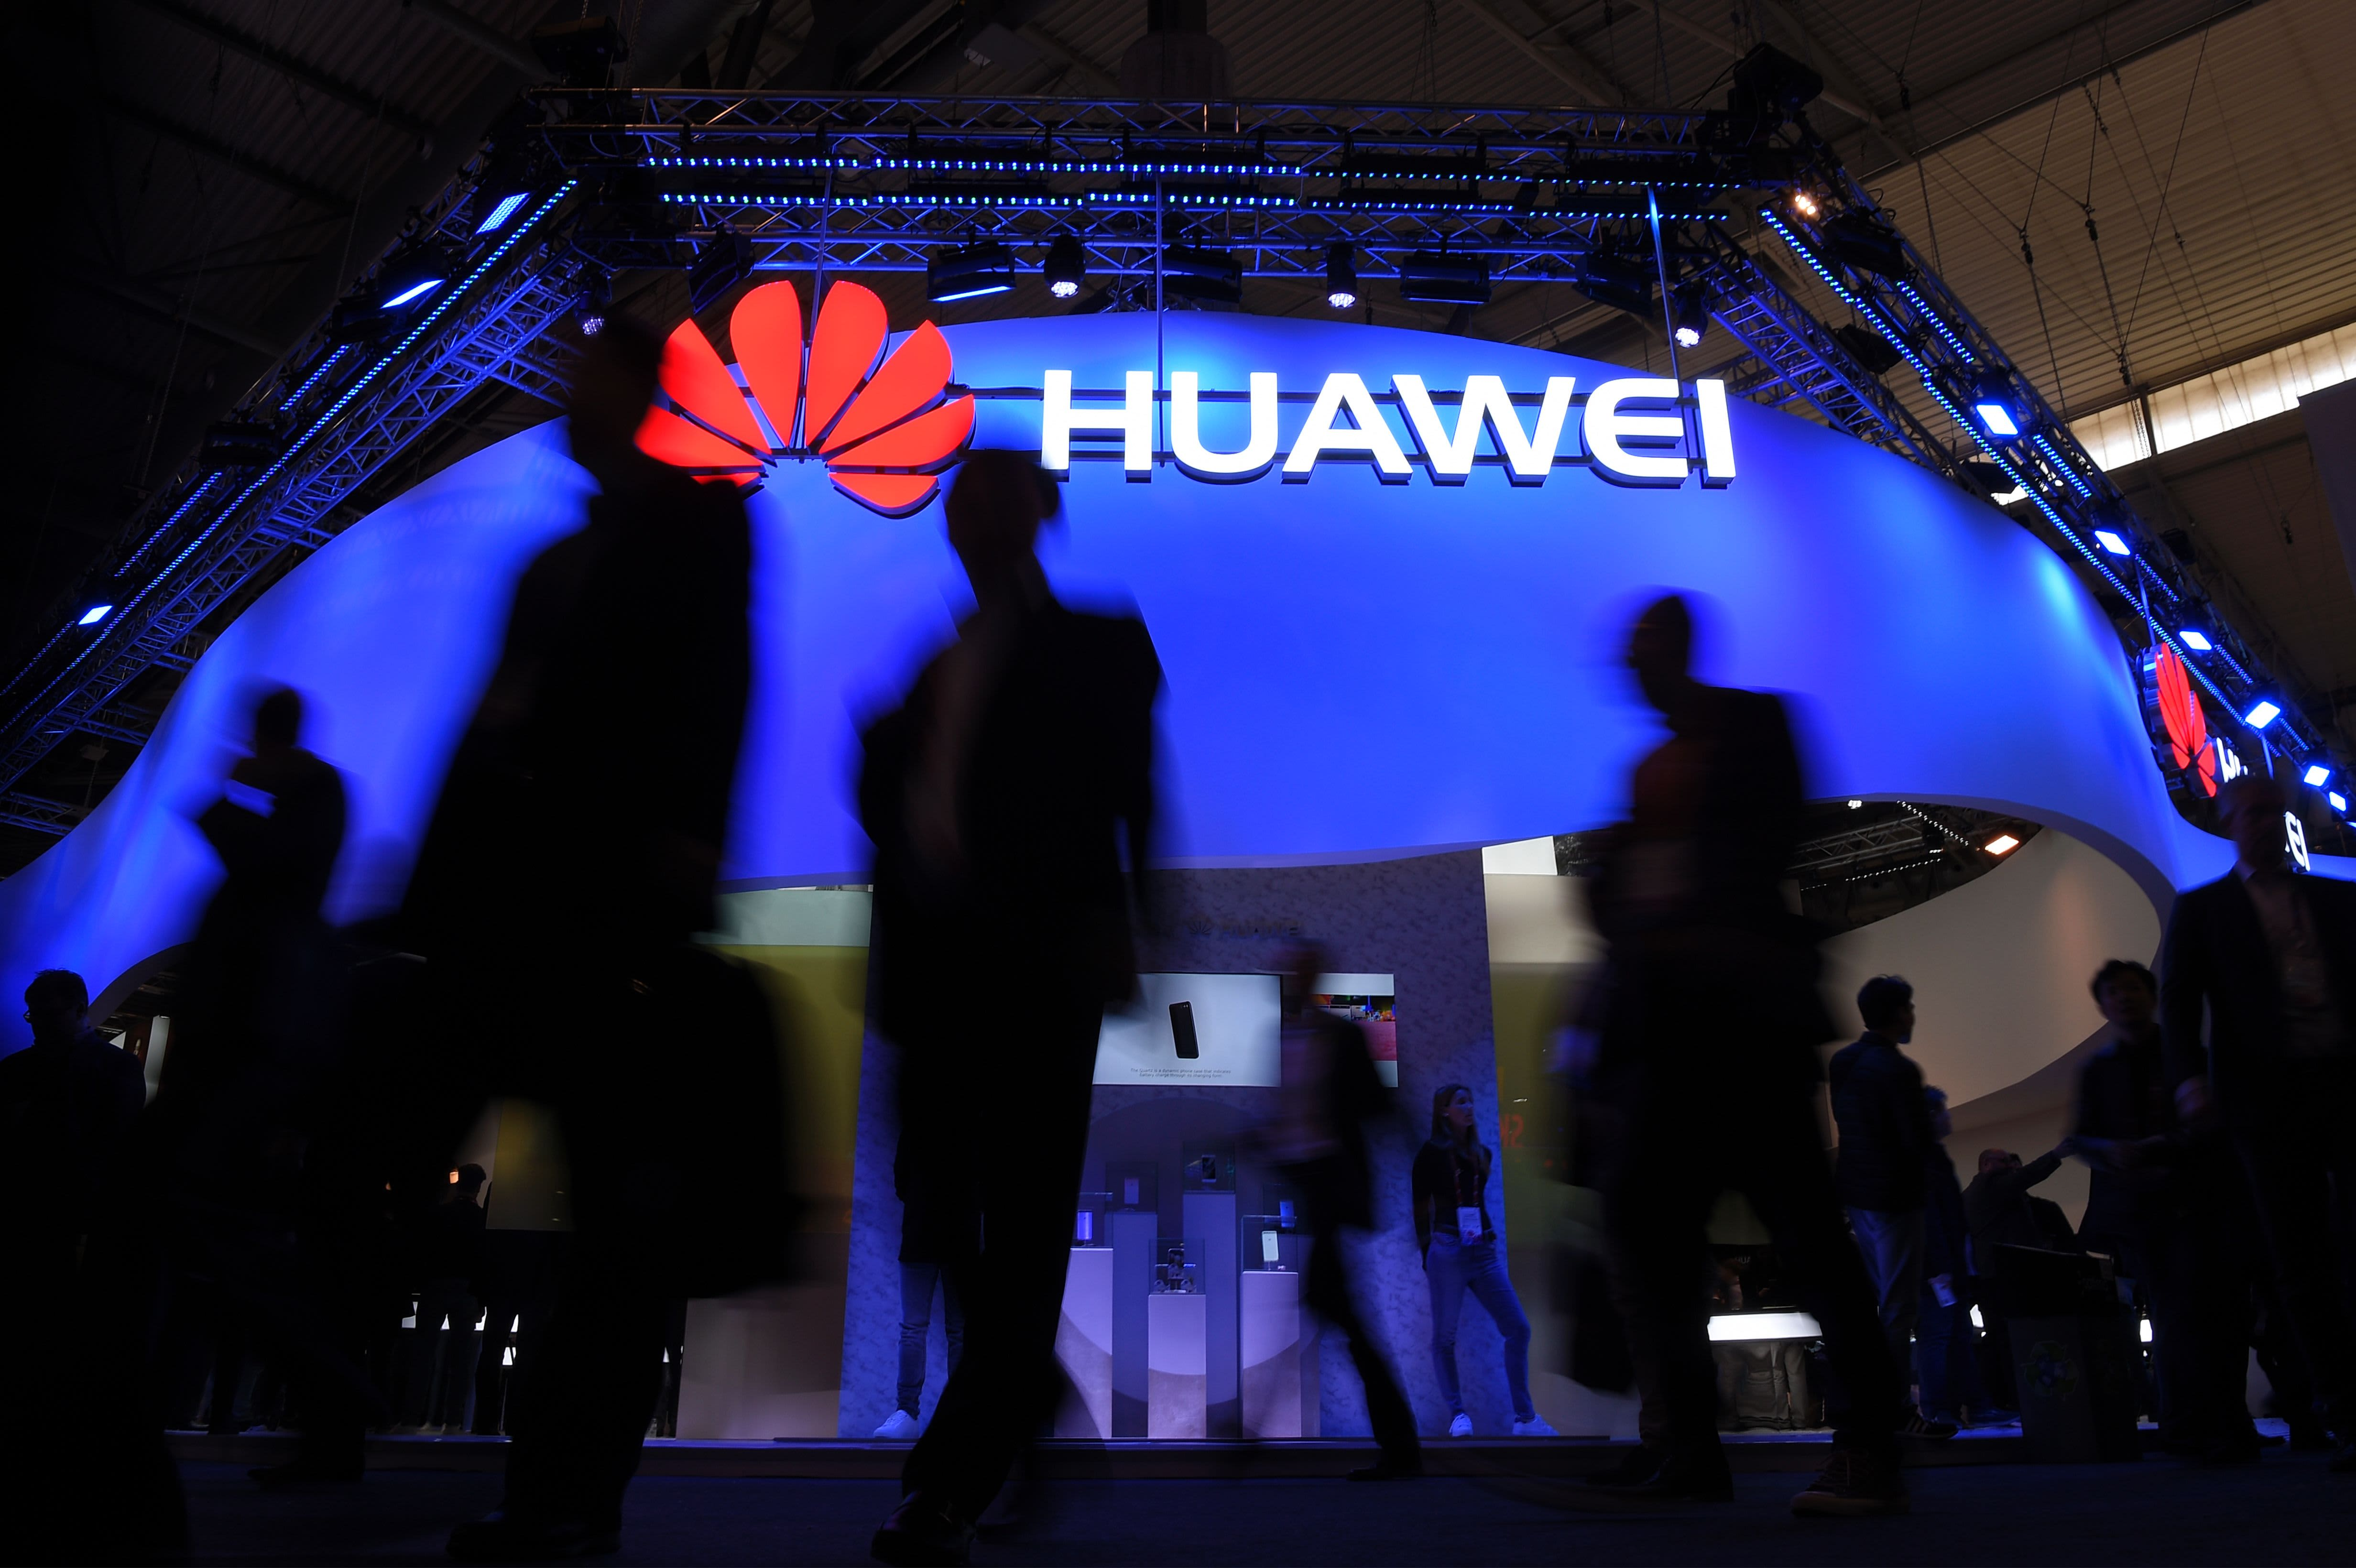 Visitors pass in front of the Huawei's stand on the first day of the Mobile World Congress in Barcelonaon on February 27, 2017 in Barcelona.